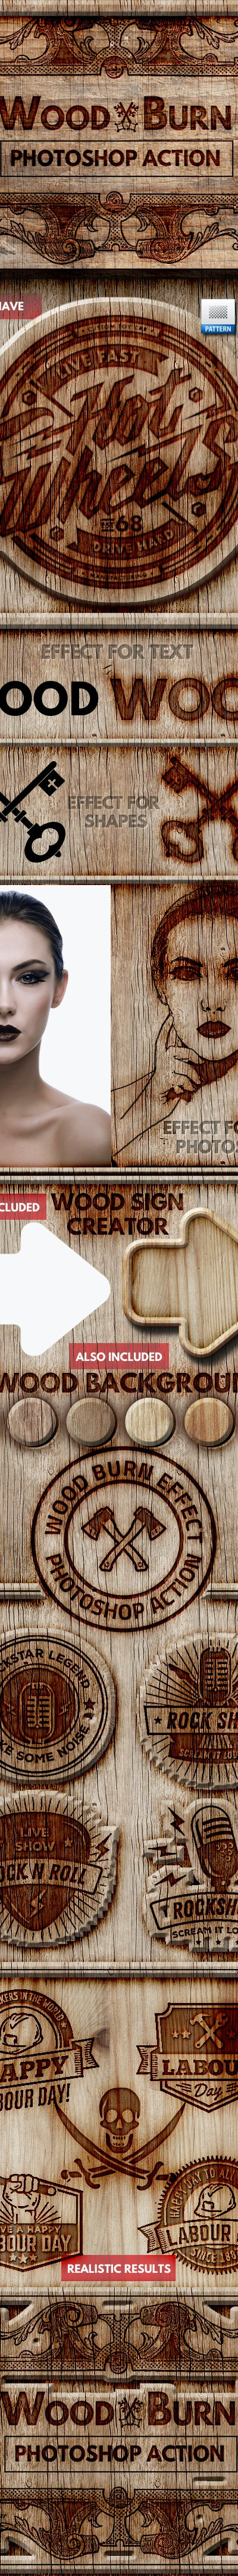 01 main preview wood burn photoshop action